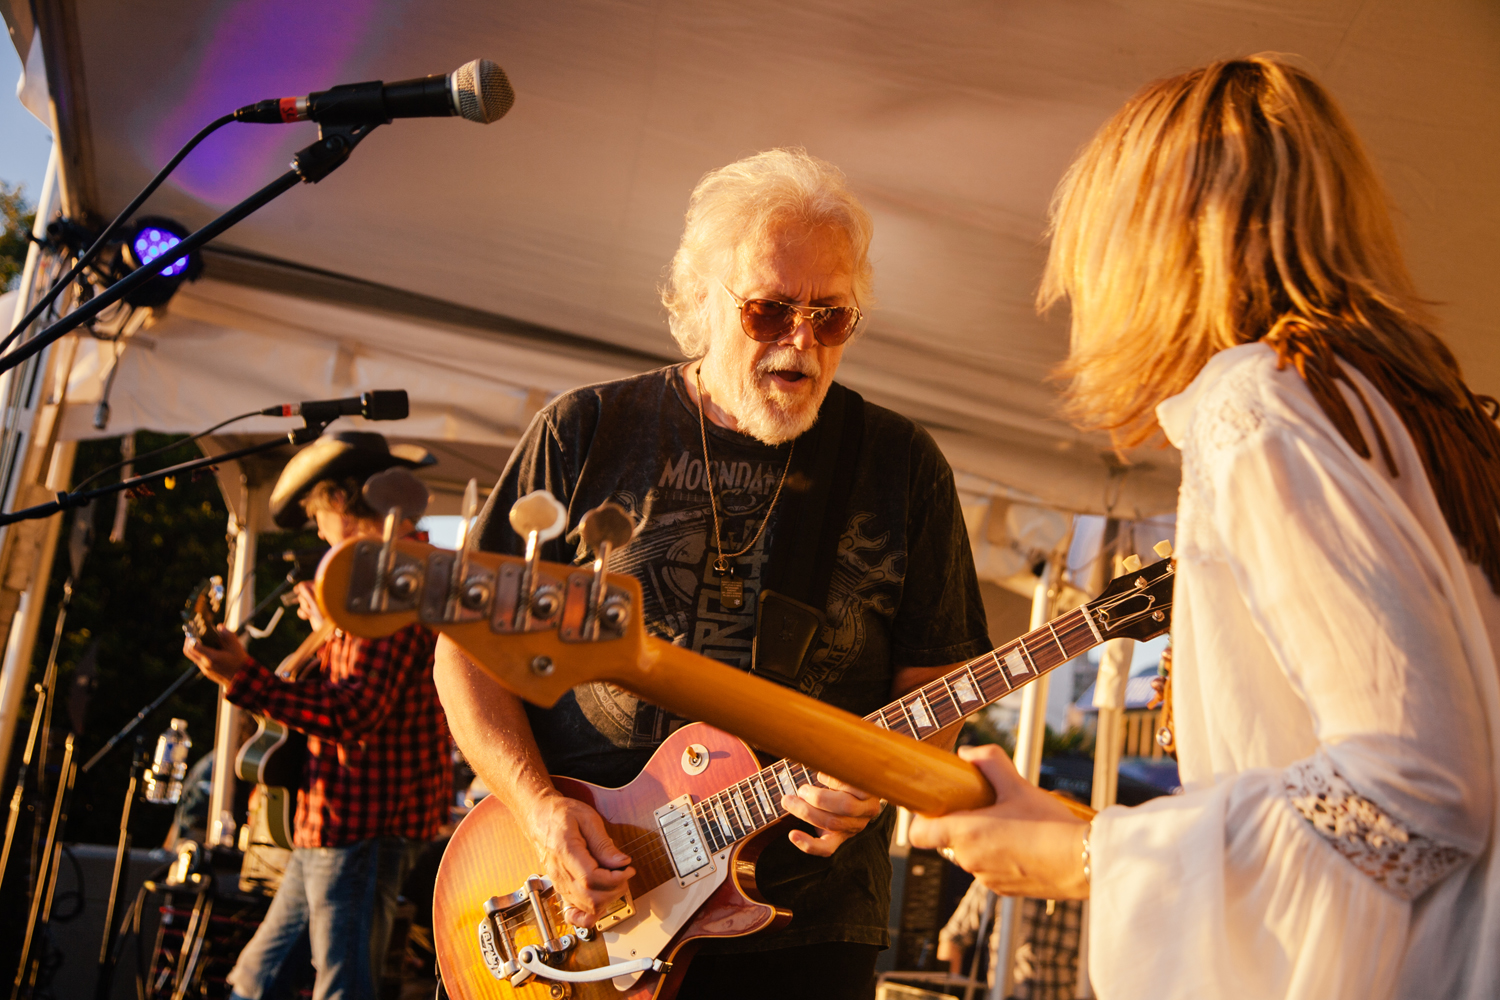 Randy Bachman @ SHOREFEST photo by Christine McAvoy